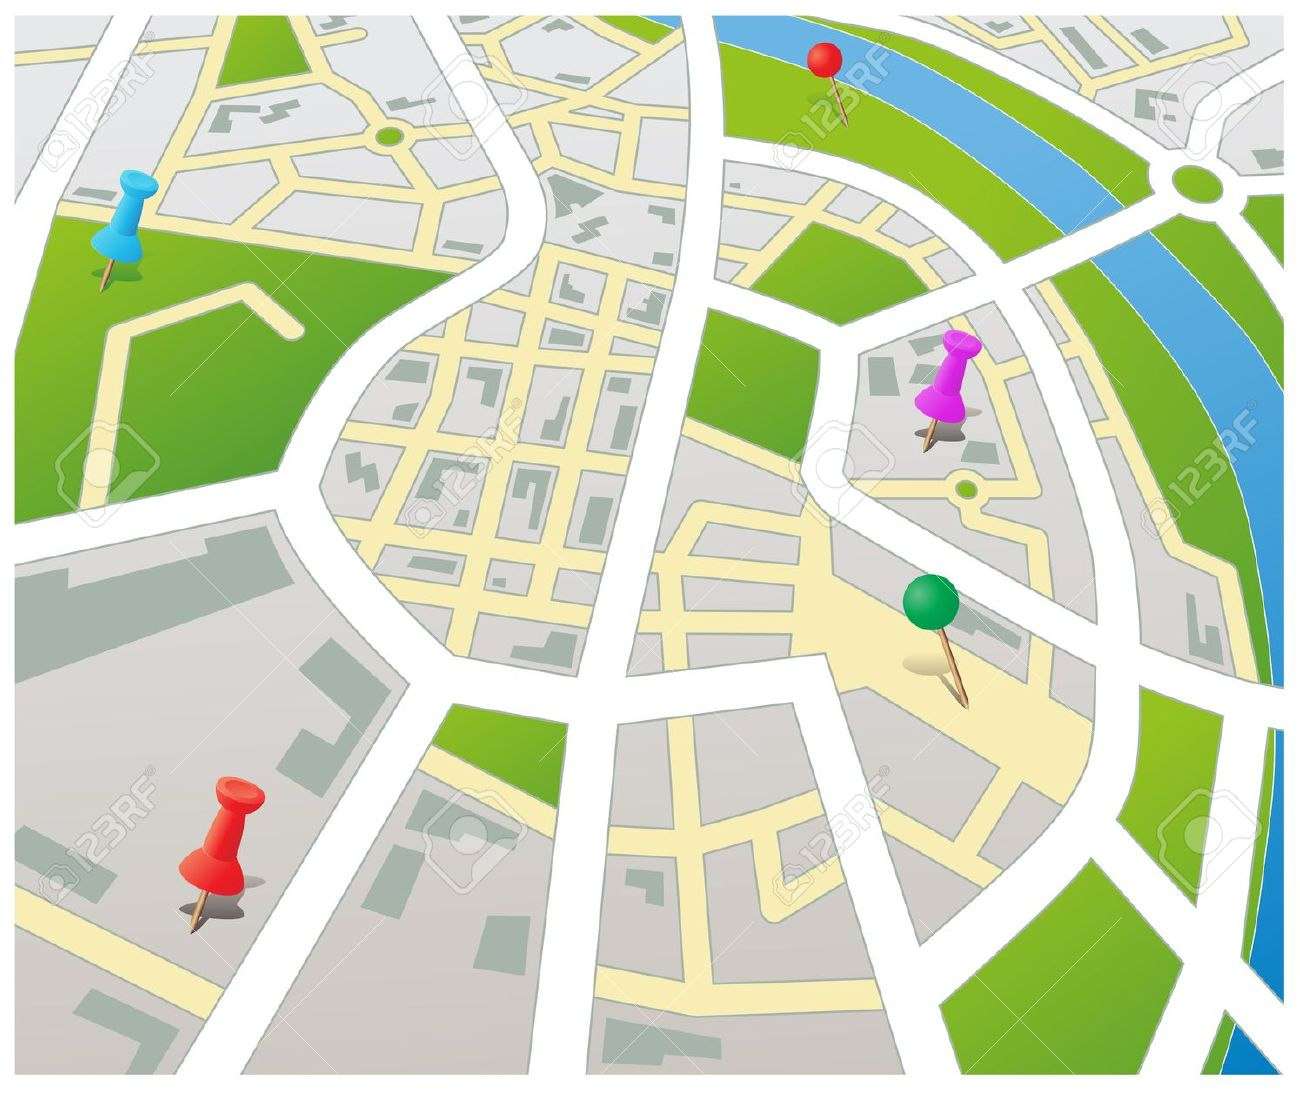 City road map clipart clipart library download City road map clipart - ClipartFest clipart library download